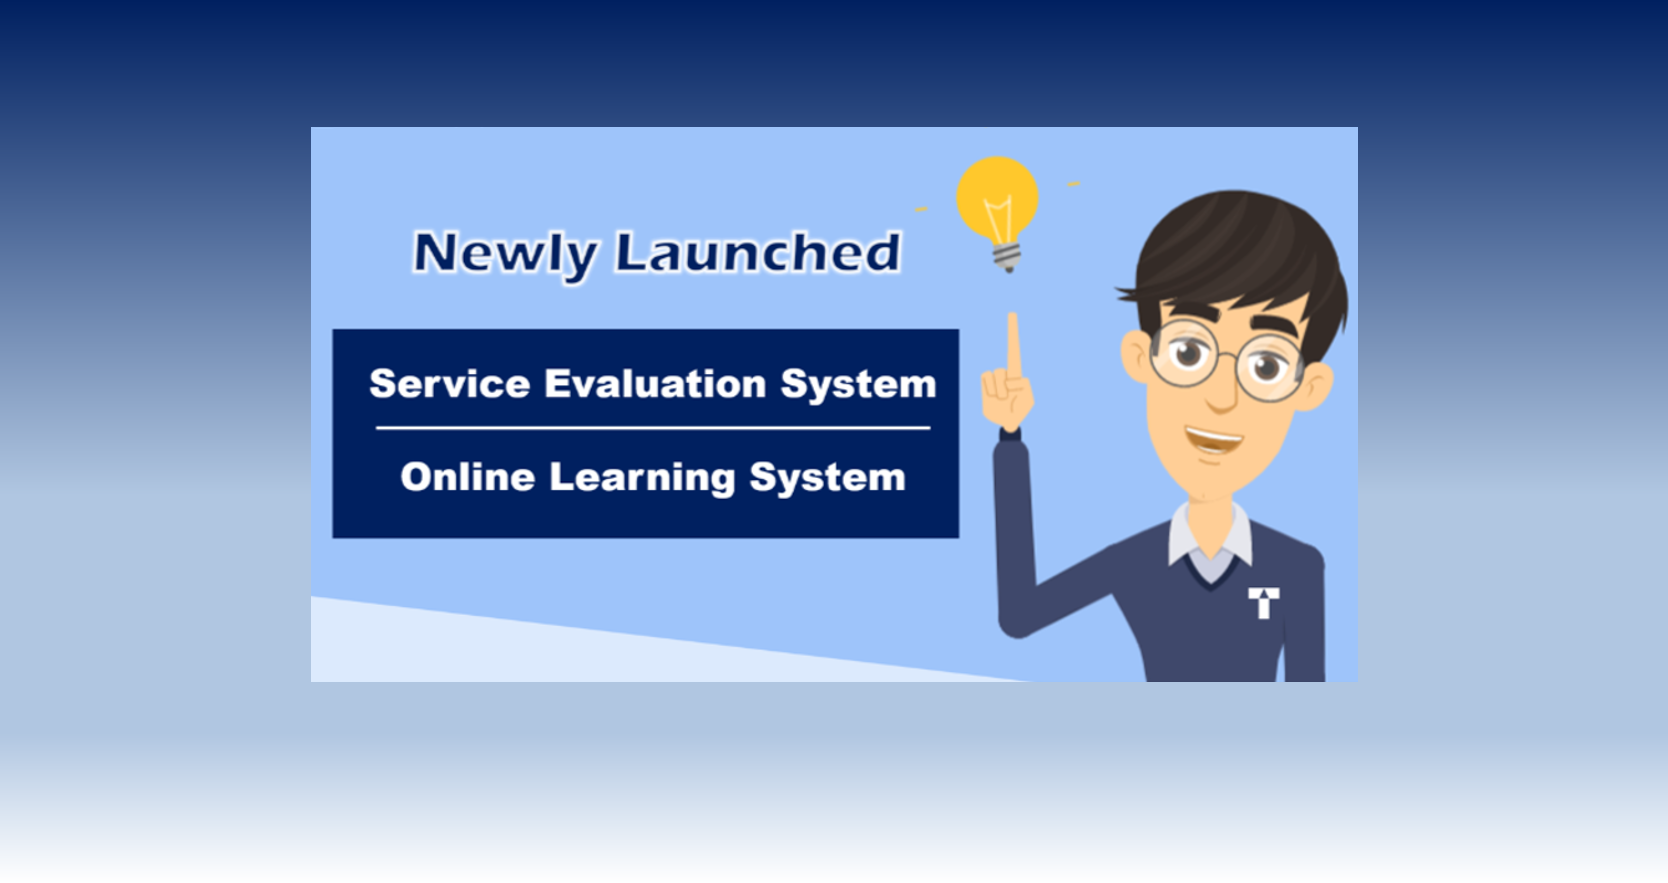 Newly Launched